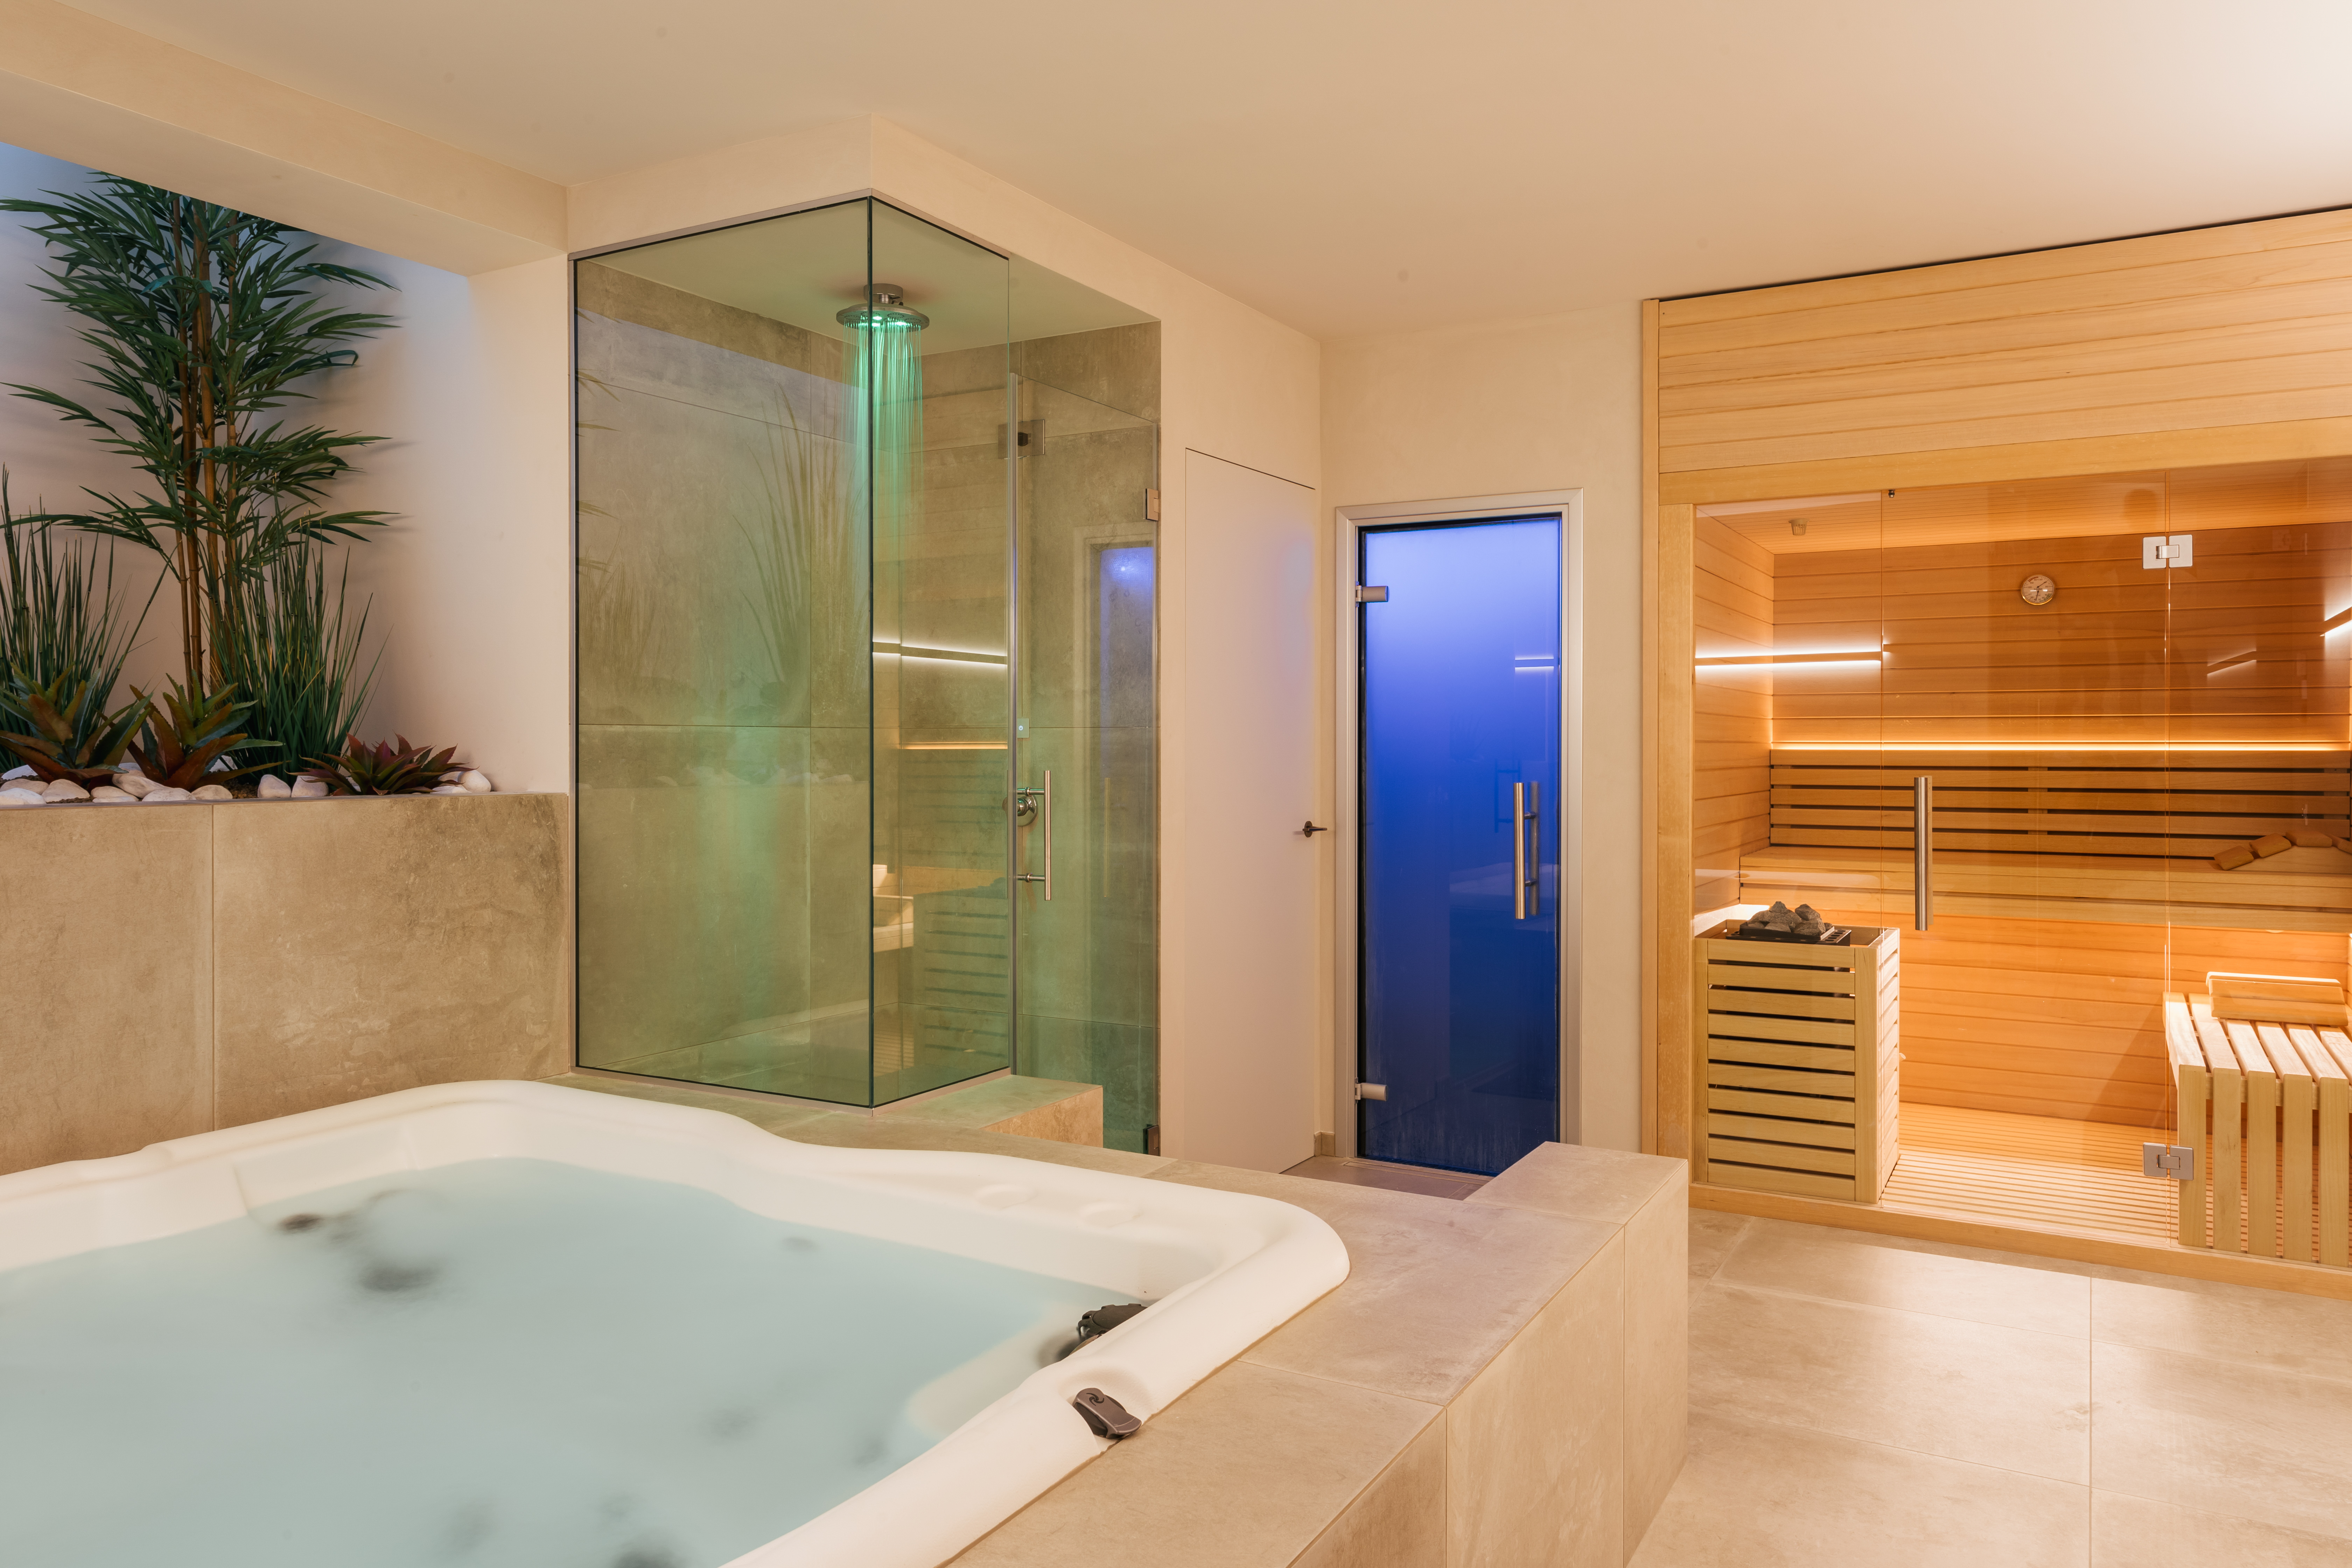 Spa pan out, Sauna, jacuzzi, shower and steam room_Villa Olivo_Photo credit Andrea Volpini